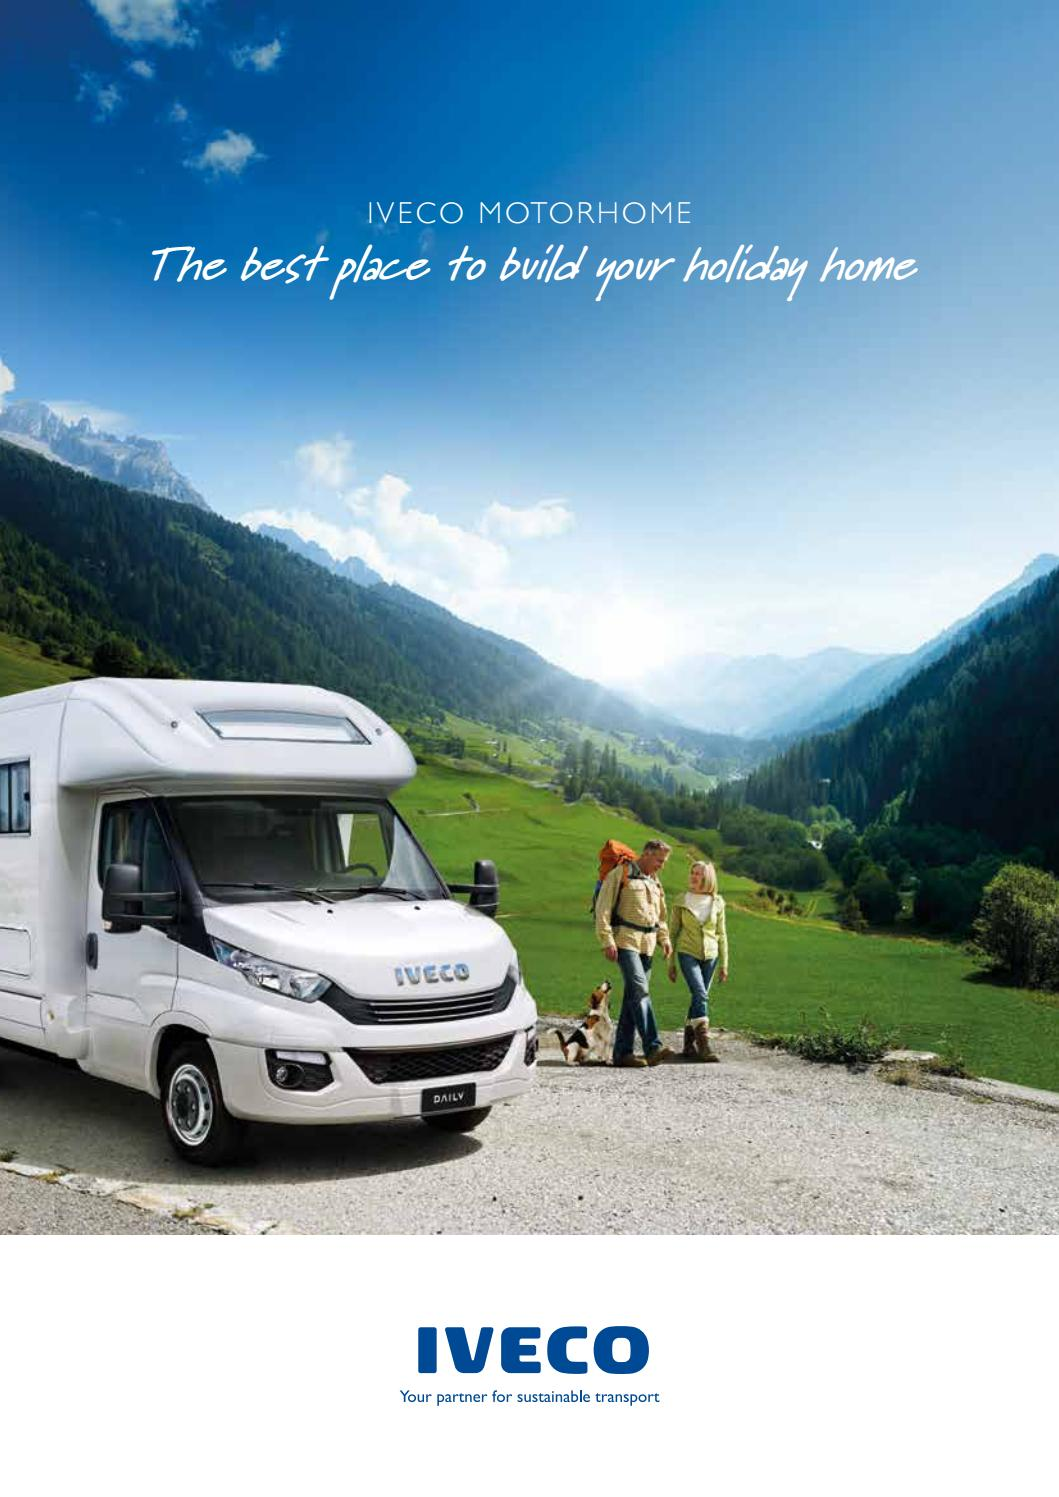 Motorhome iveco by Iveco - issuu